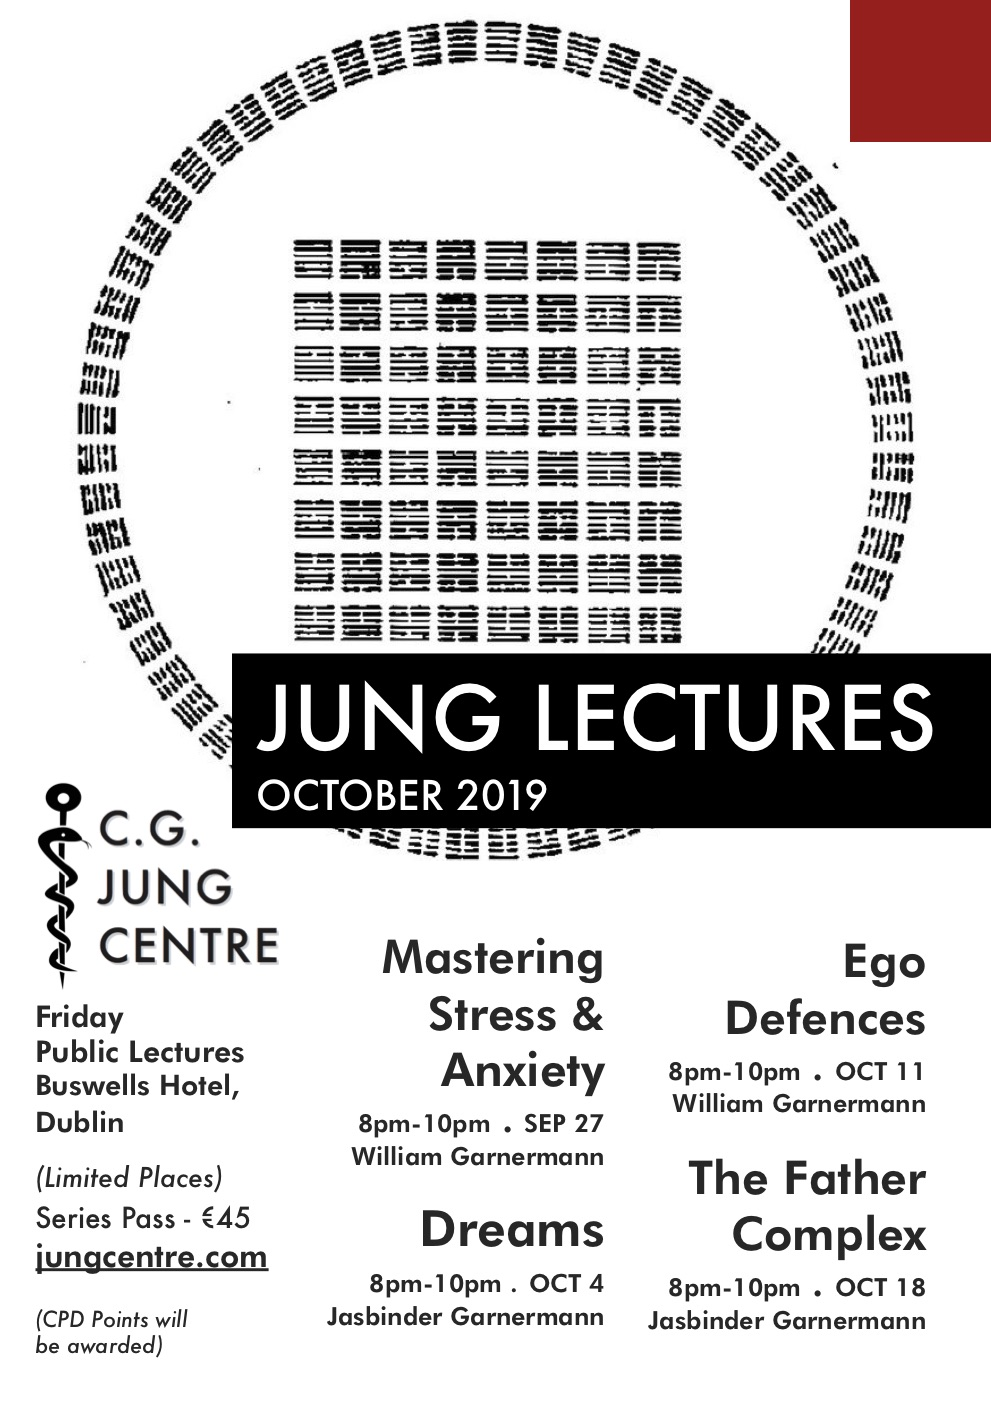 JUNG LECTURES OCT 2019 web.jpg